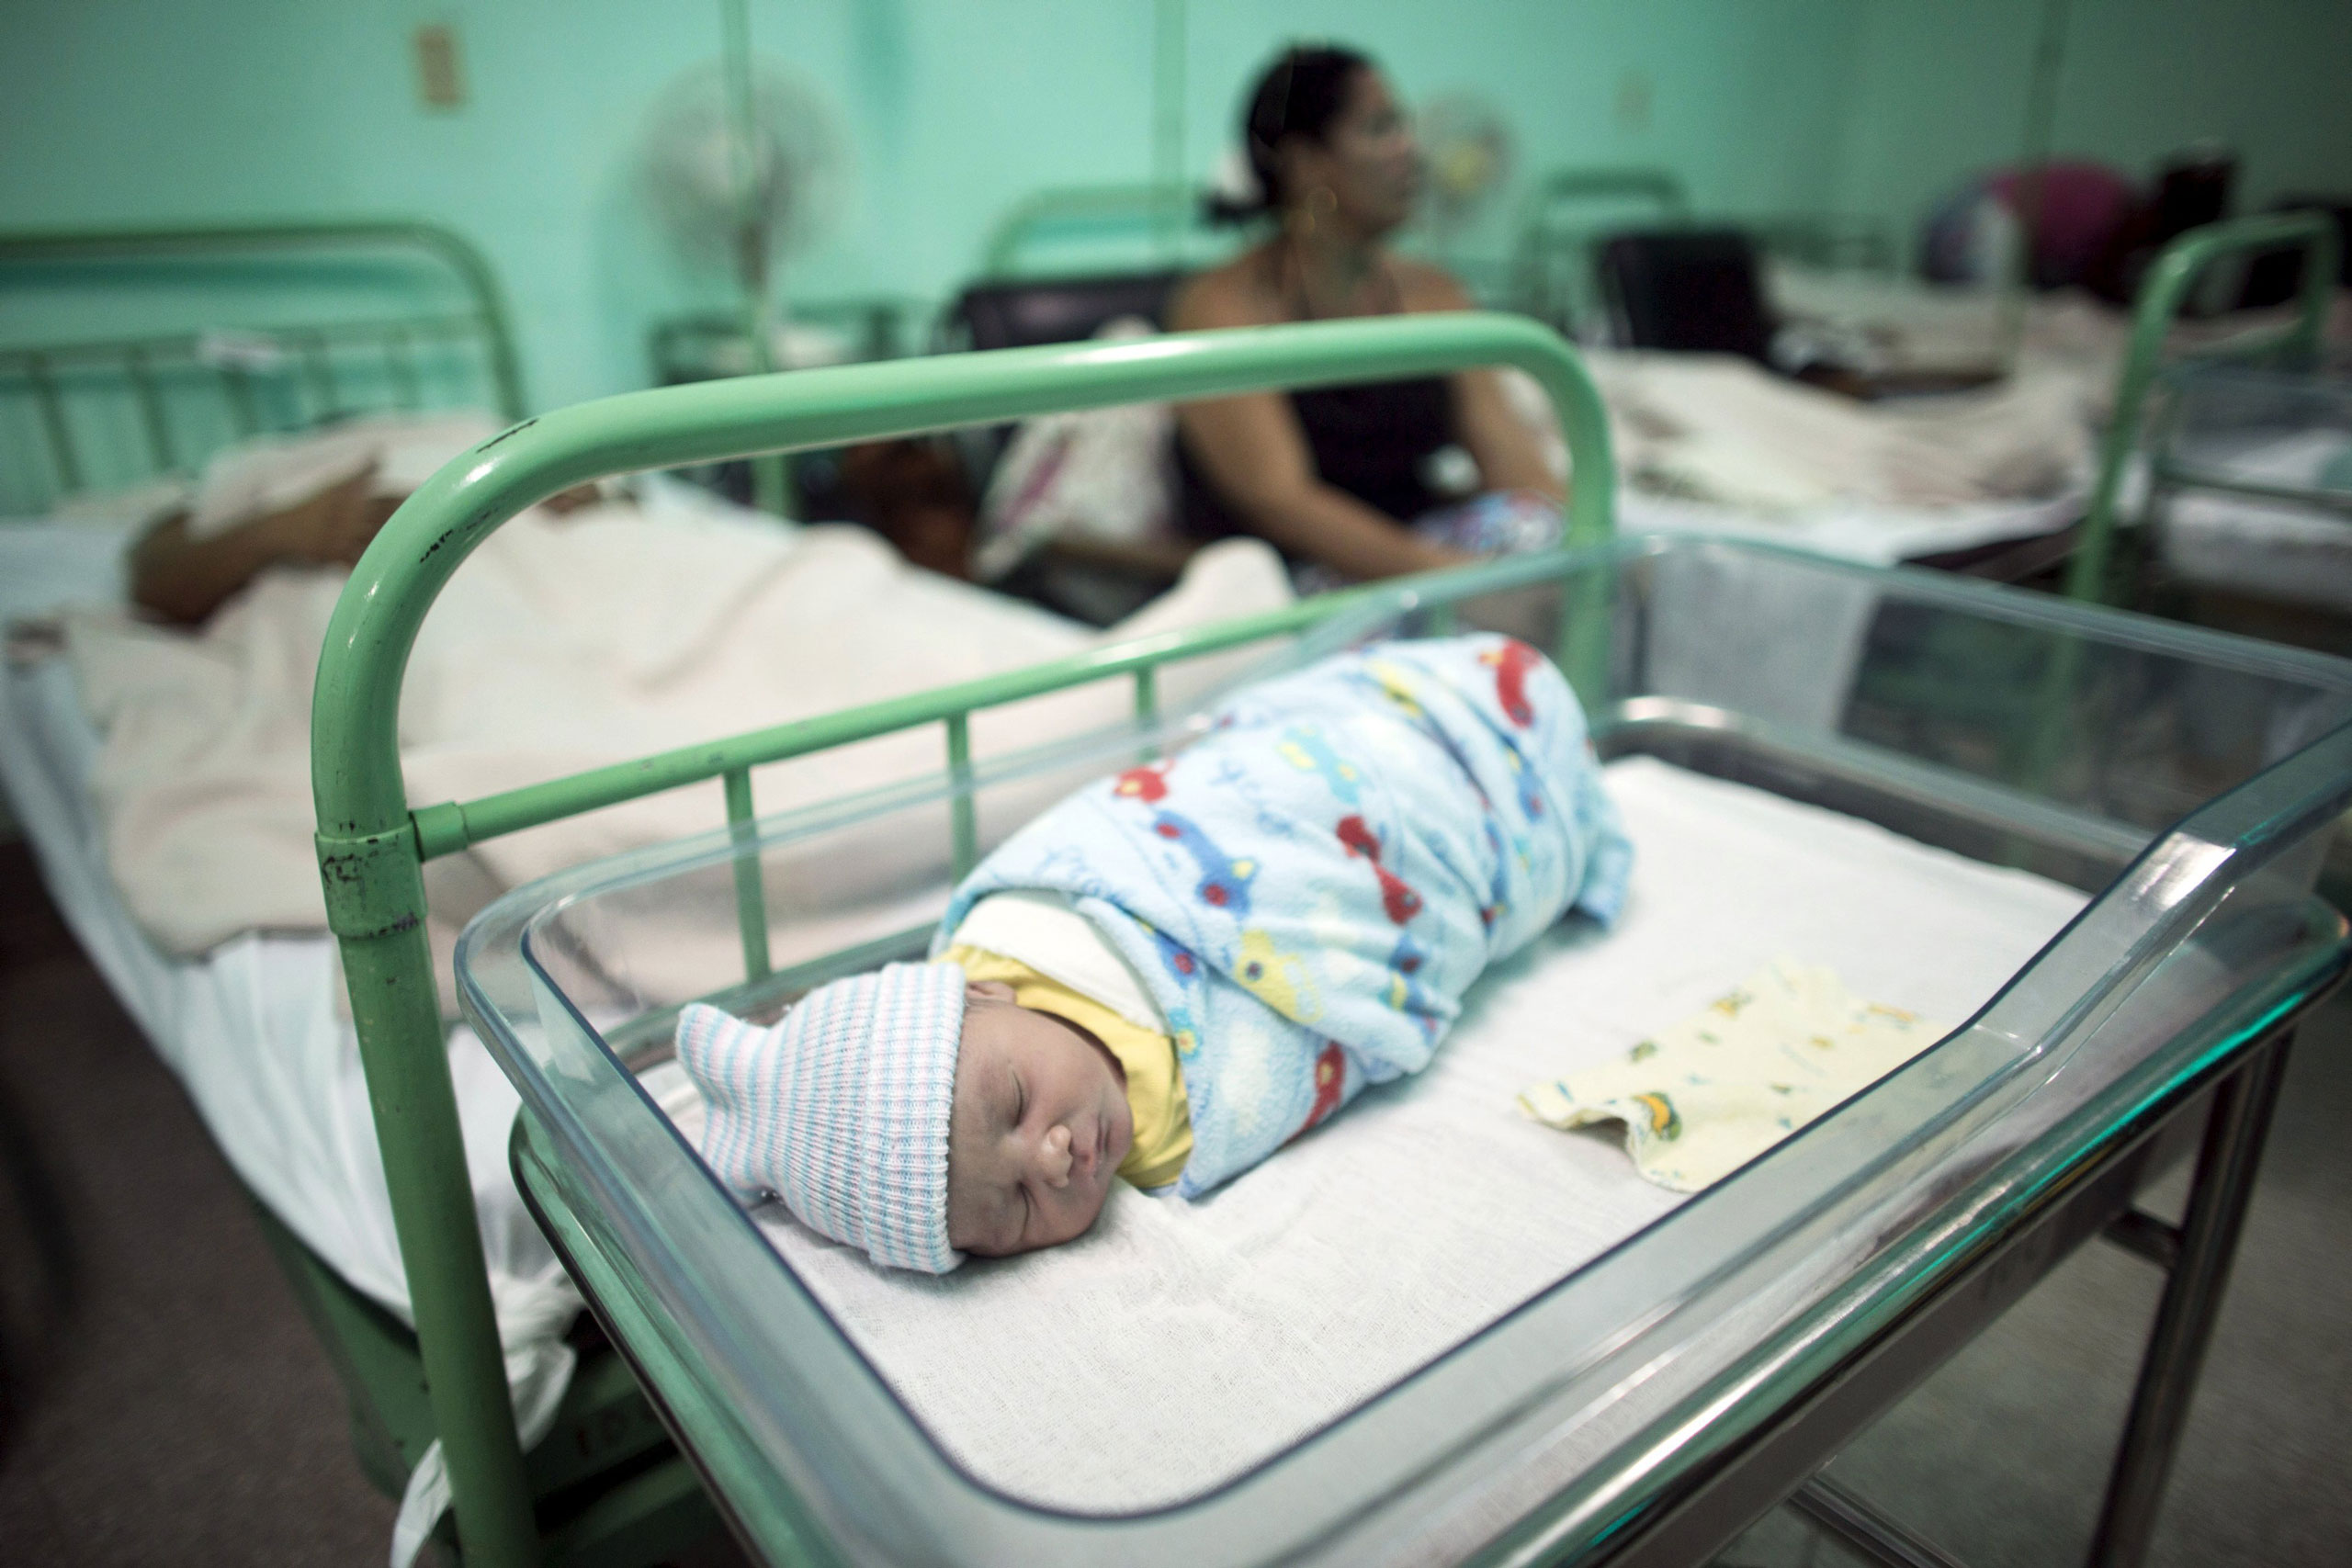 A new born baby rests beside his mother at the Ana Betancourt de Mora Hospital in Camaguey, Cuba, on June 19, 2015.